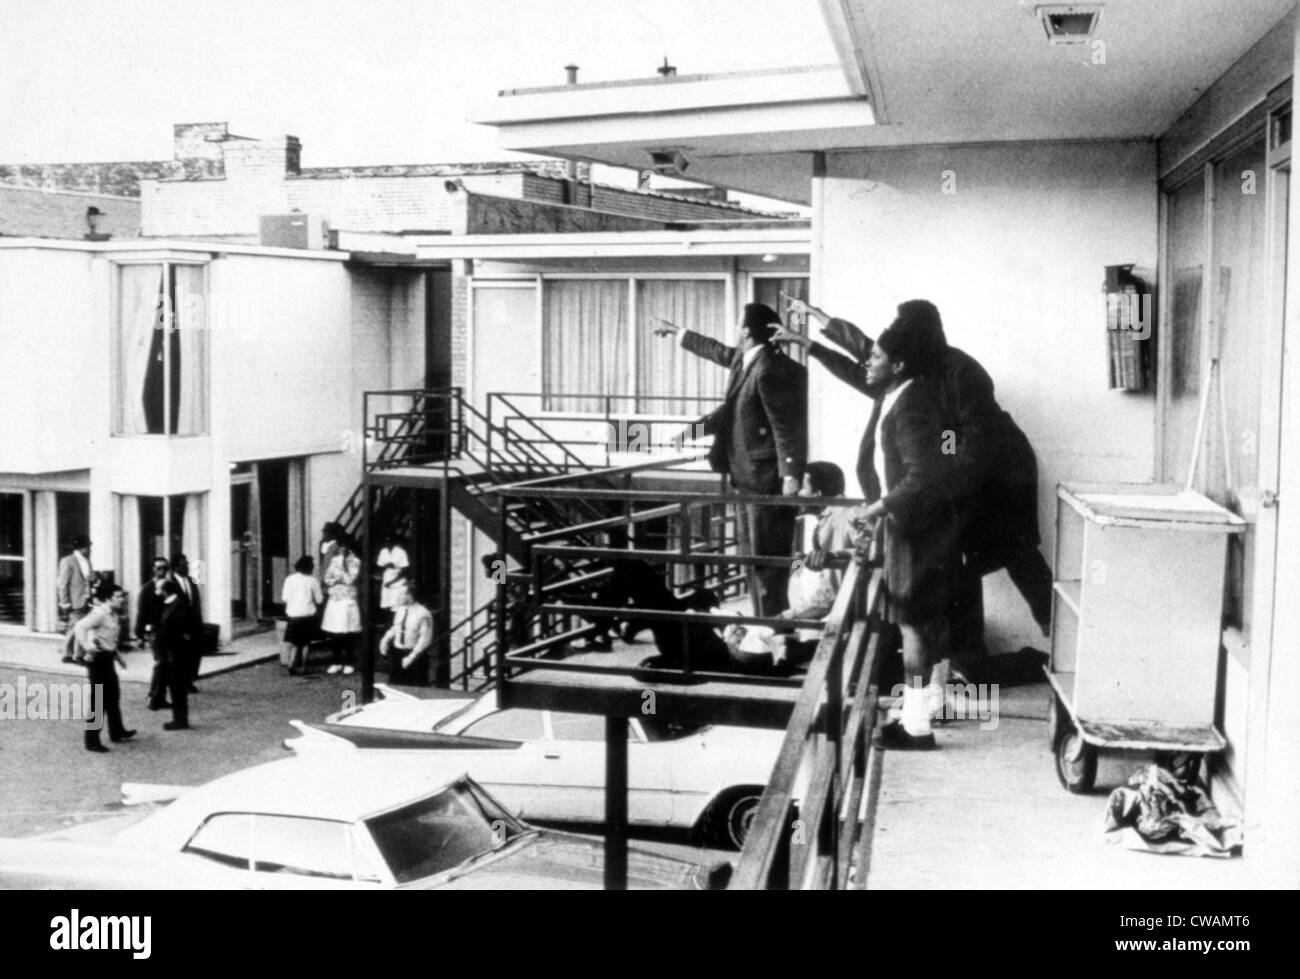 MARTIN LUTHER KING, JR assassination, 1968.. Courtesy: CSU Archives / Everett Collection Stock Photo